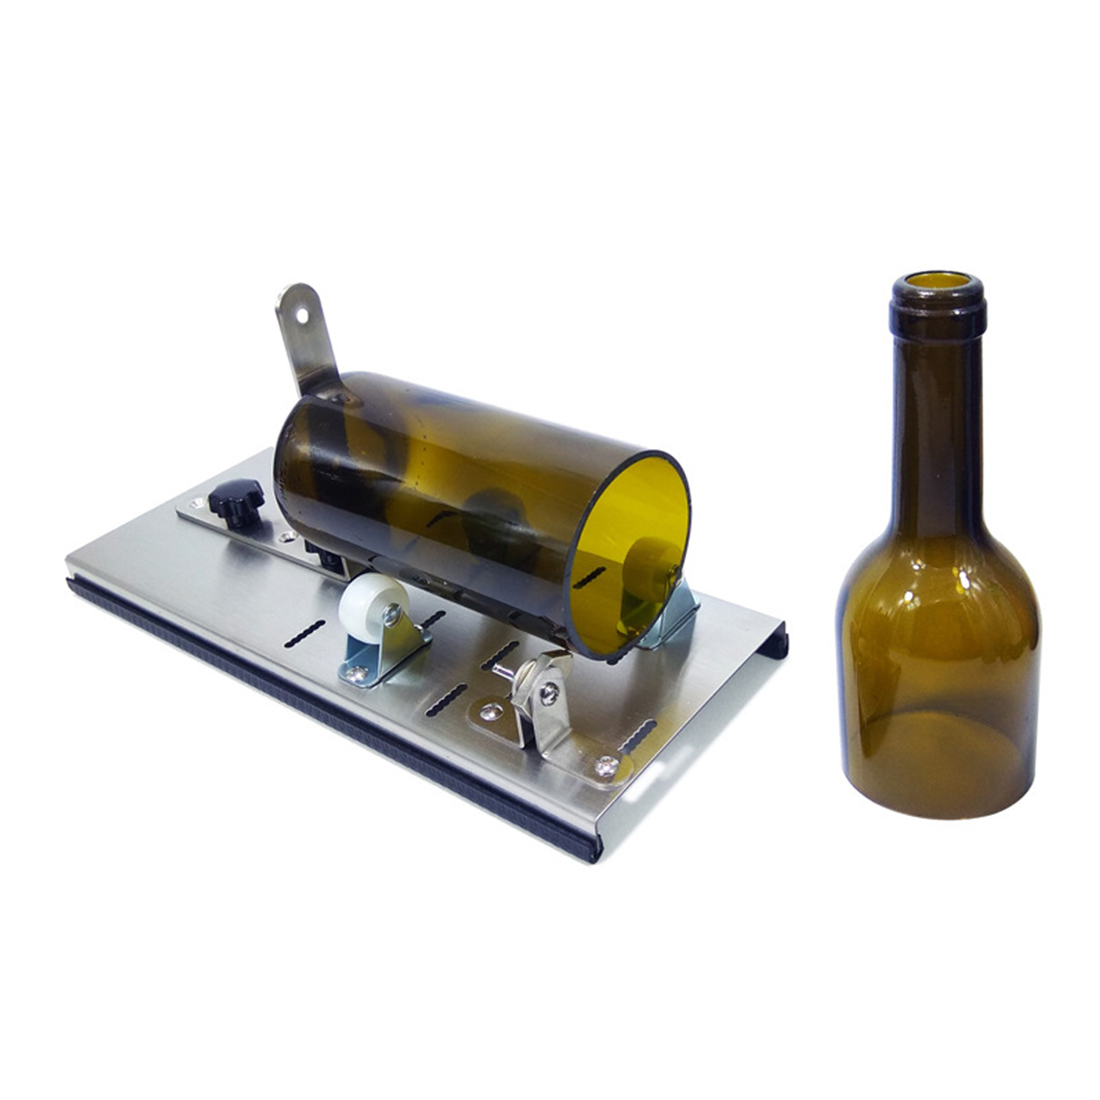 6pcs/set Metal Cutter Glass Wine Bottle Cutter  Stainless Steel Bottle Cutters For Cutting Machine DIY Craft Recycle Tool